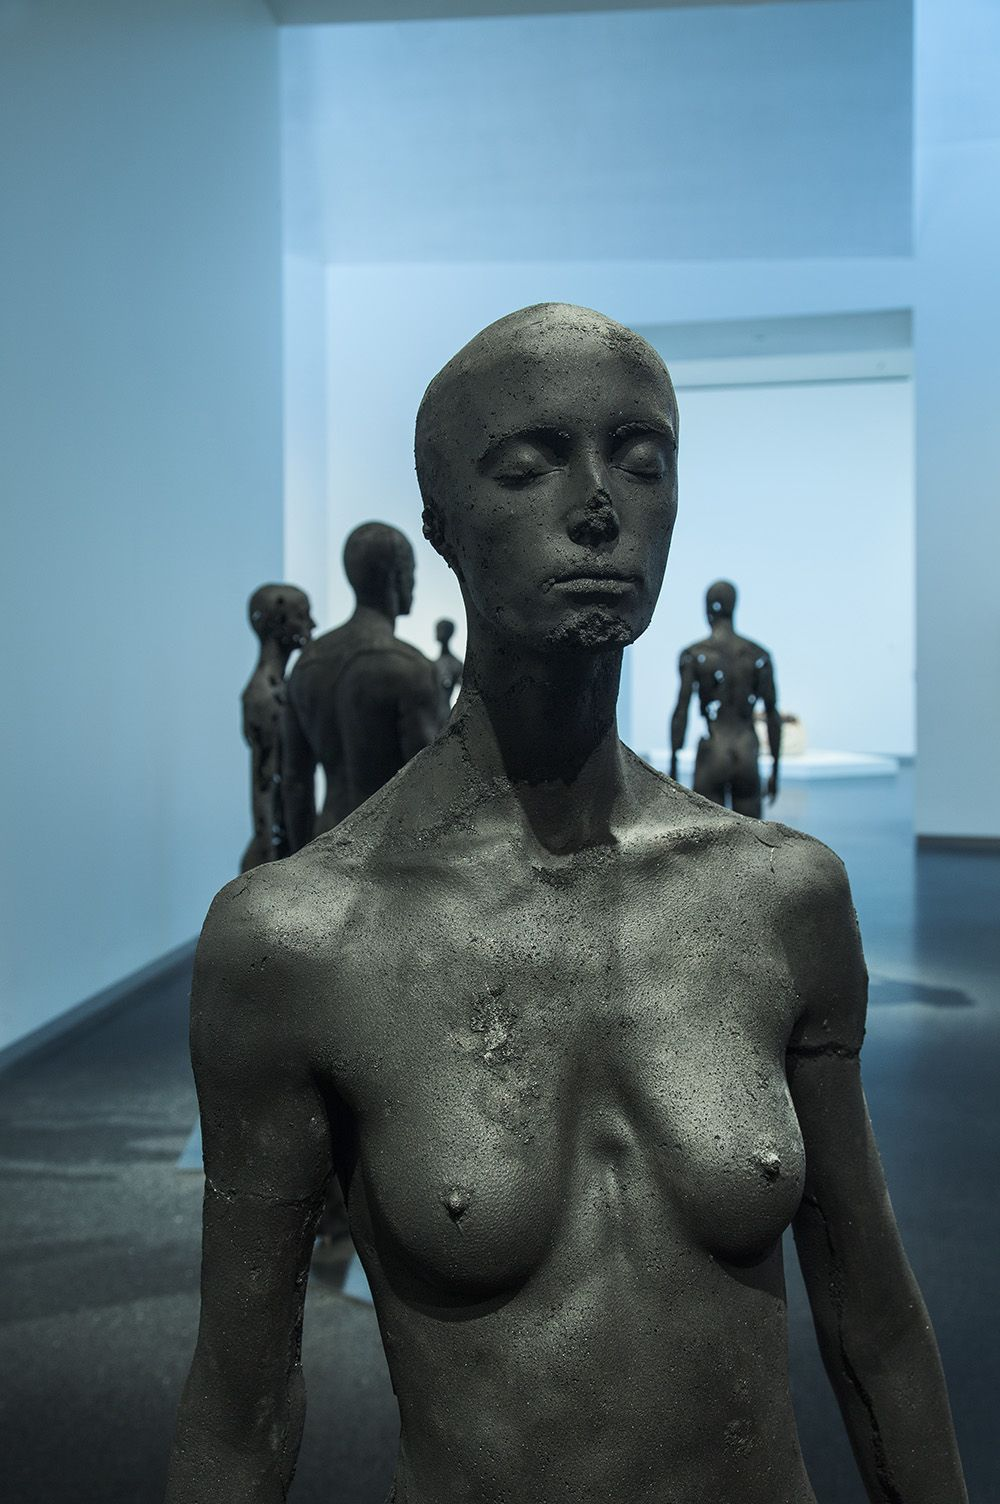 Sculpture - Tom Price - The Presence of Absence - Female (I) - detail 1